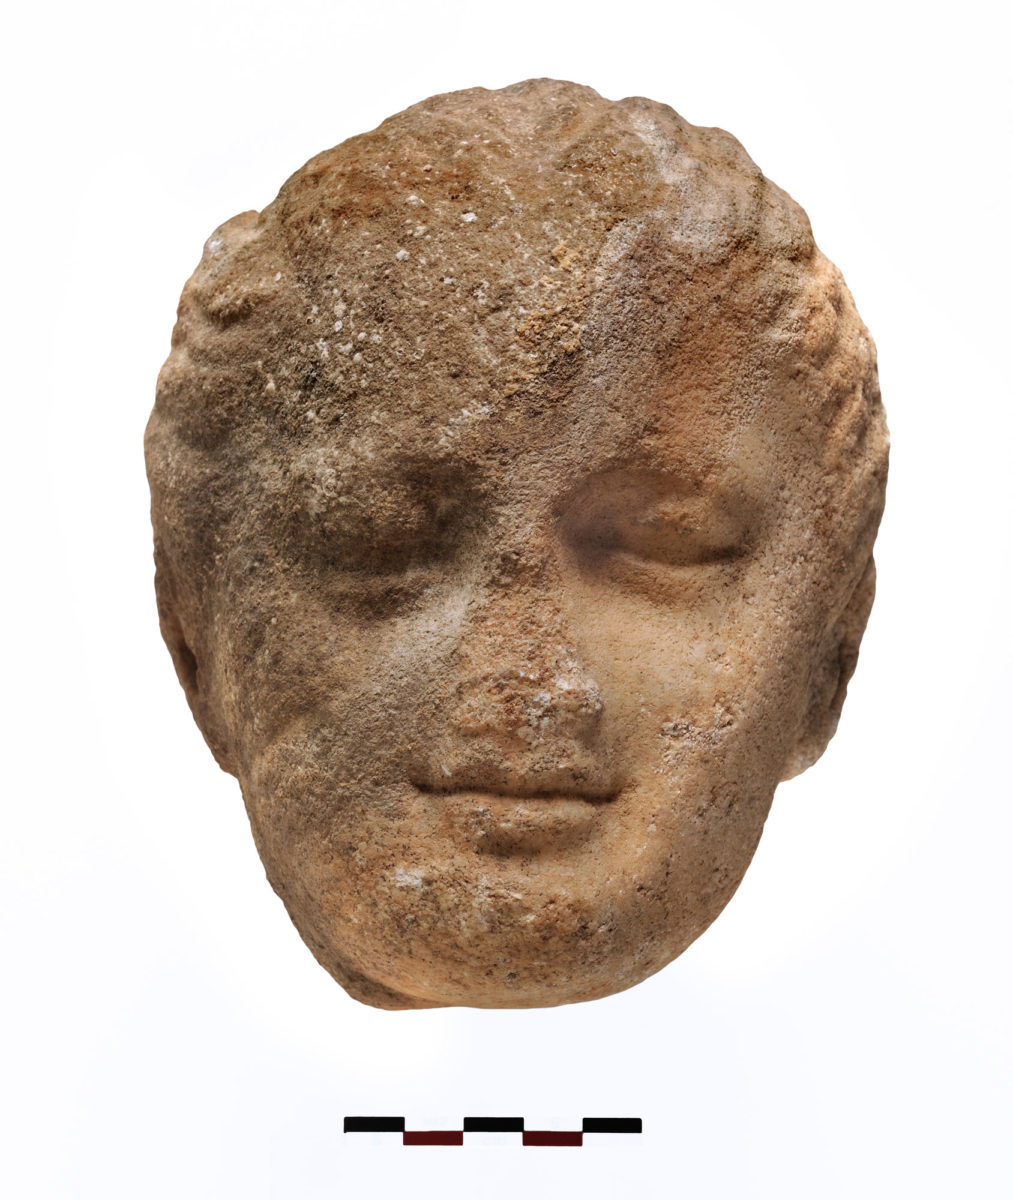 Fig. 6. Marble head of a girl found inside the cistern. Photo Credit: Kostas Xenikakis.